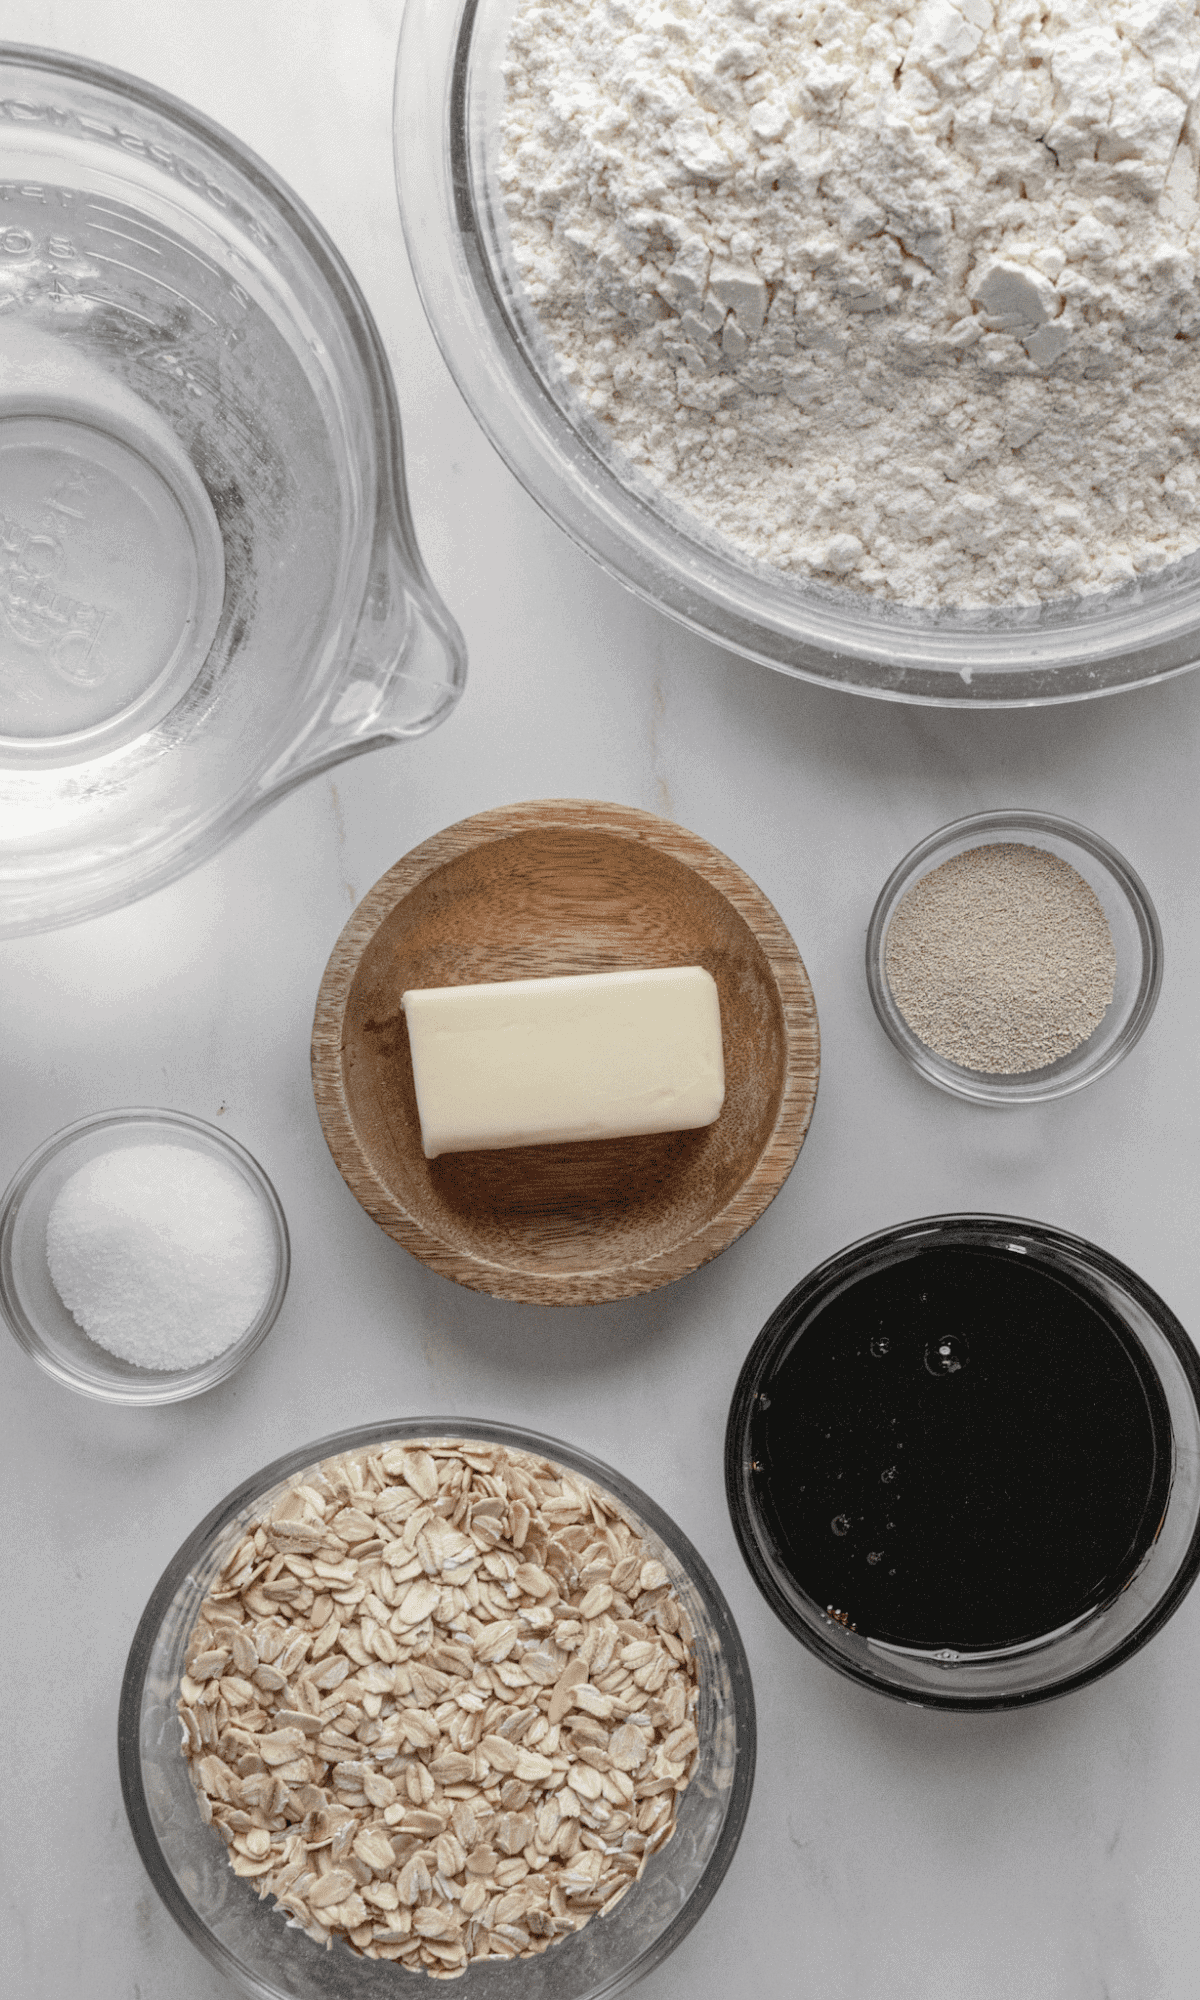 Ingredients for Oatmeal Bread in varying bowl shapes and sizers.